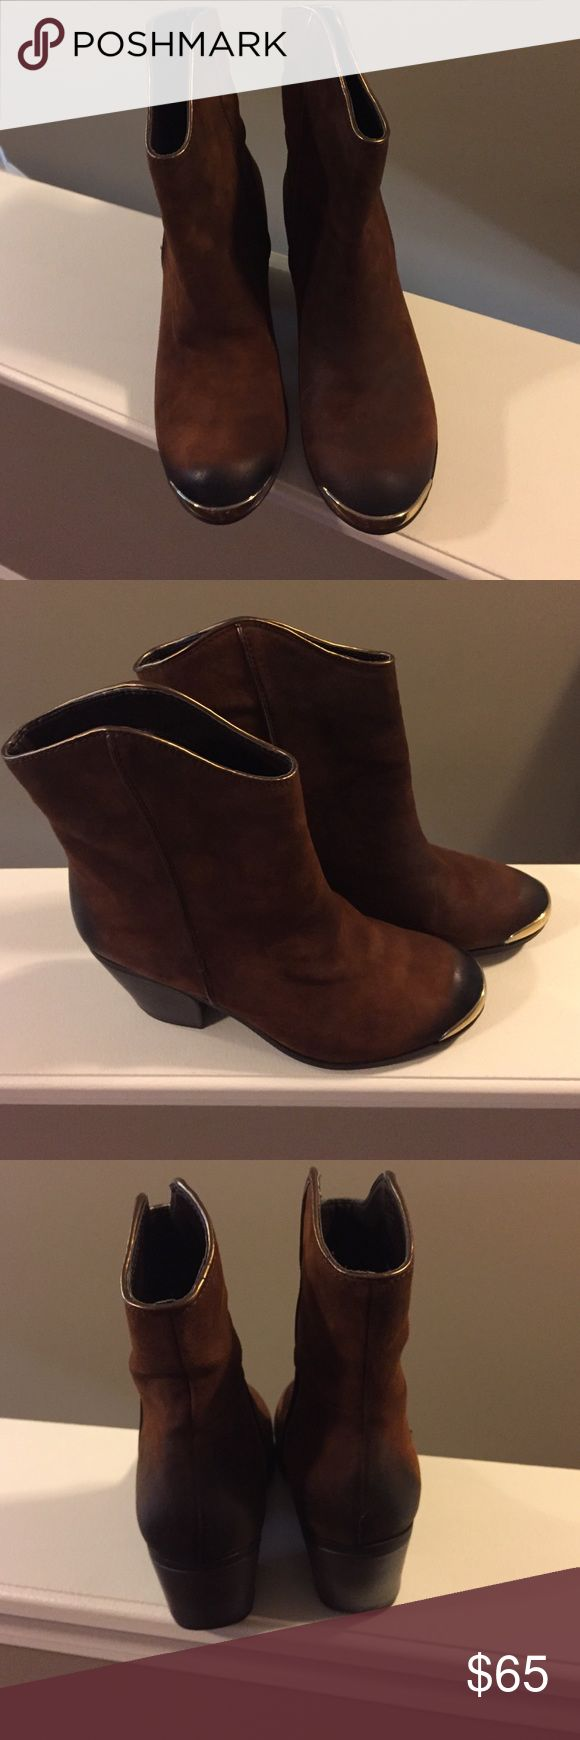 Fergie booties. New in the box. Brand new, in the box. Fergie brand cinnamon/ tobacco colored booties. Super cute, I have them in another color and always get compliments when I wear them. Fergie Shoes Ankle Boots & Booties